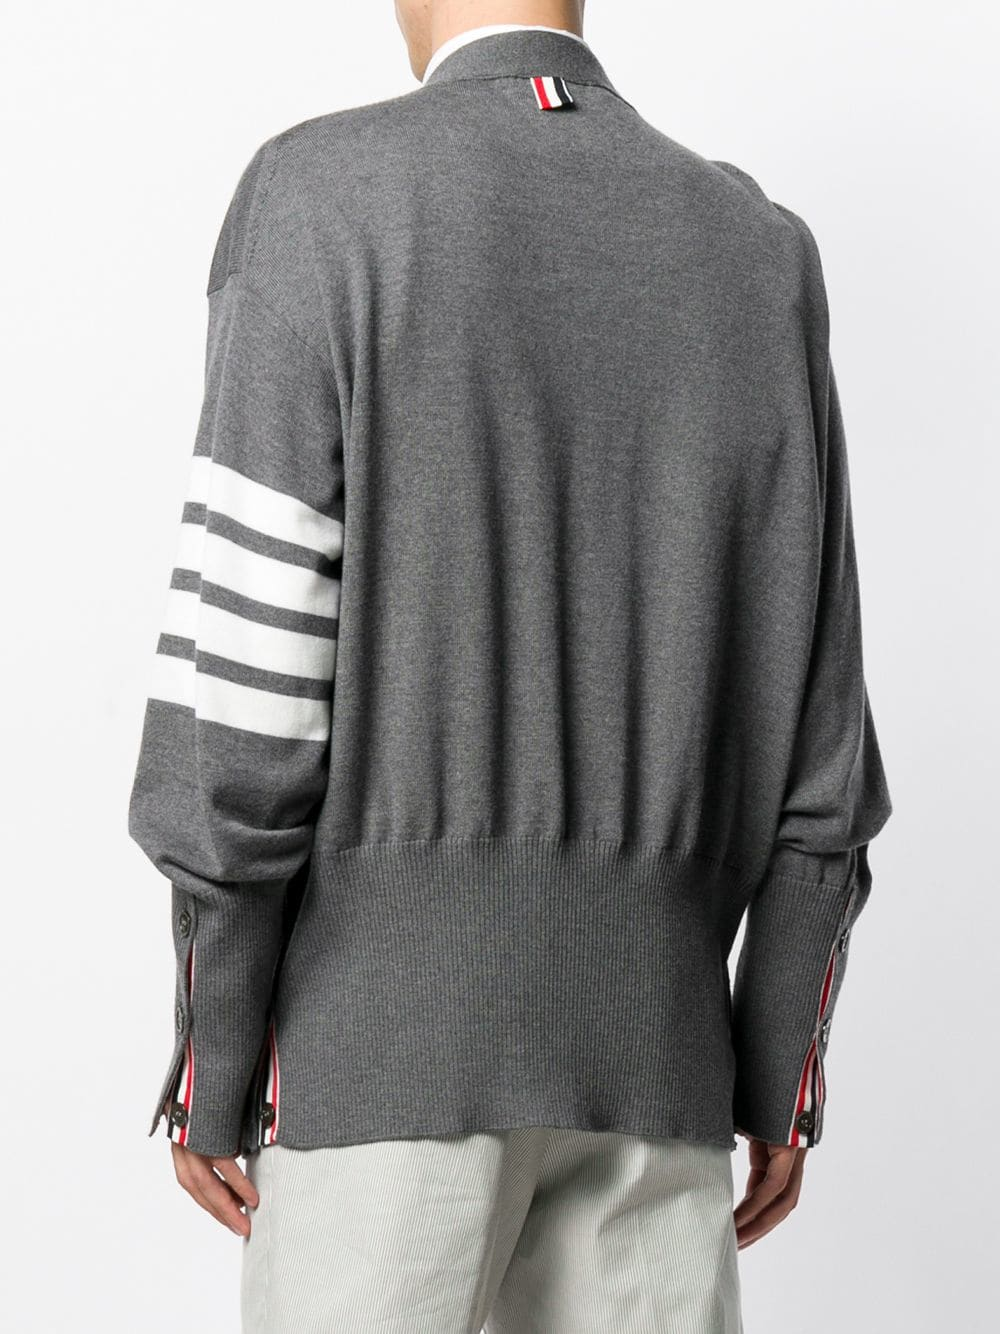 THOM BROWNE MEN OVERSIZED CLASSIC V NECK CARDIGAN IN FINE MERINO WOOL WITH 4 BAR STRIPE